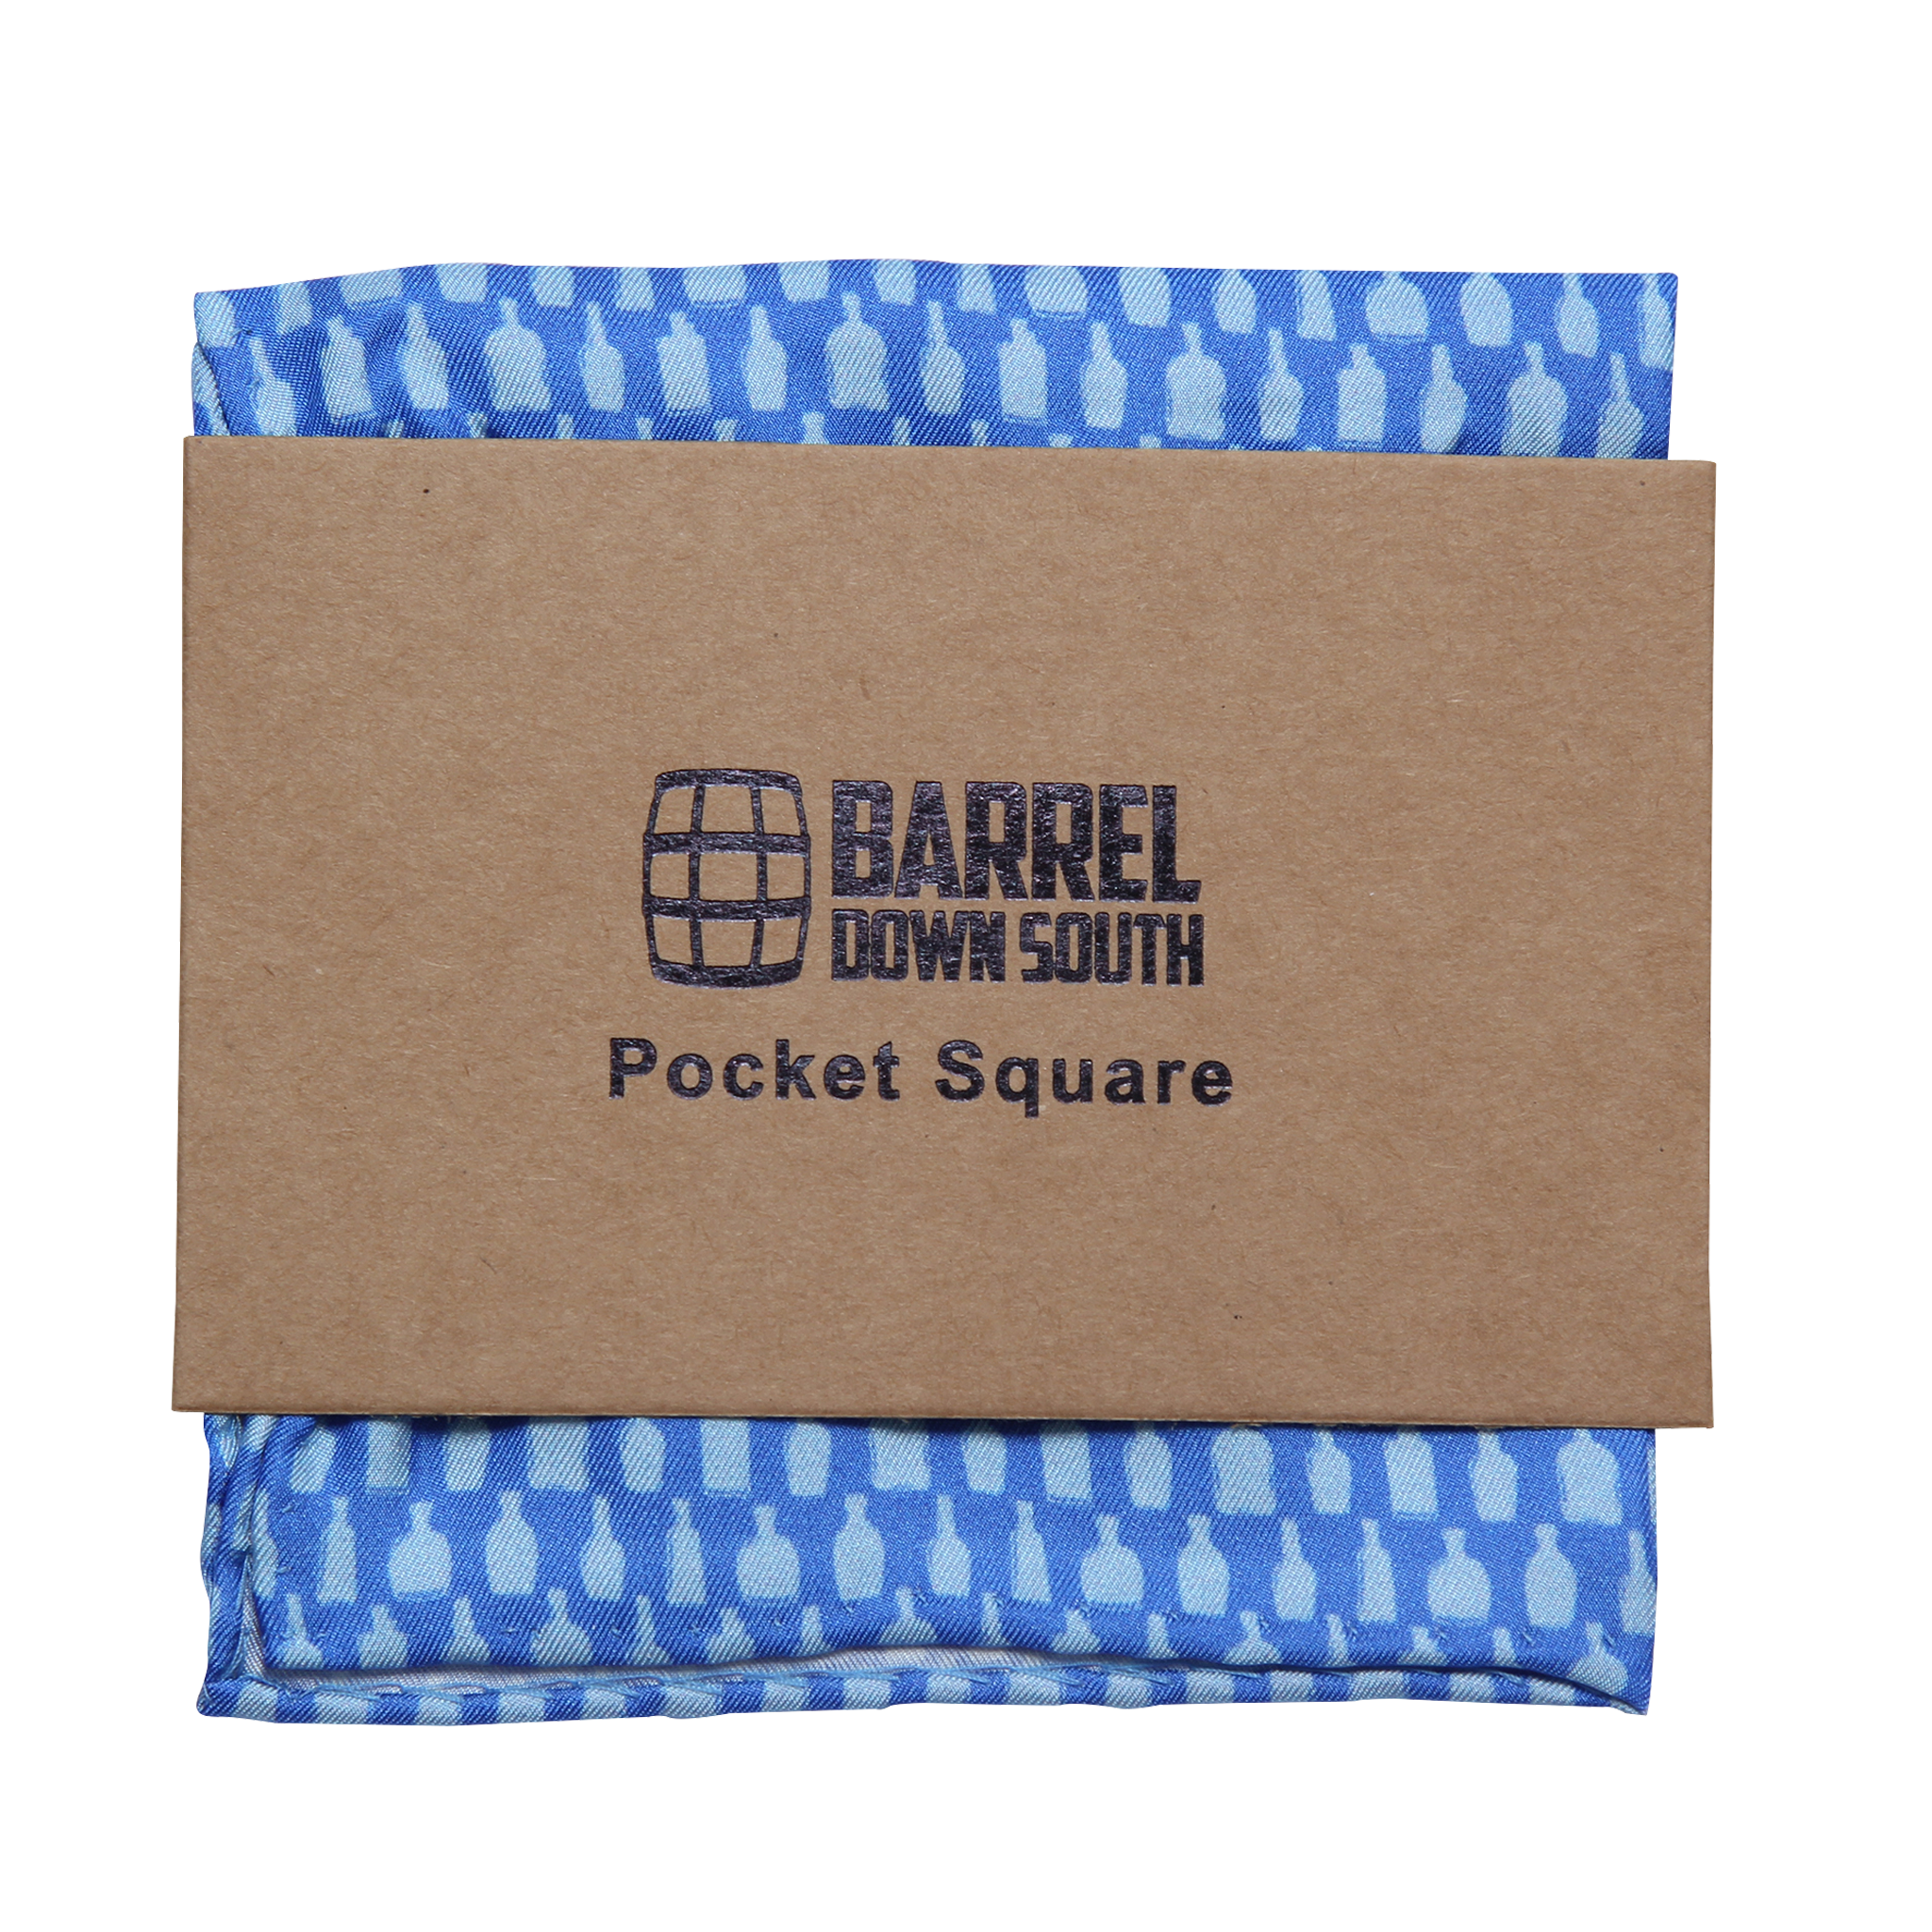 Bottled Up Blue Pocket Square - Barrel Down South